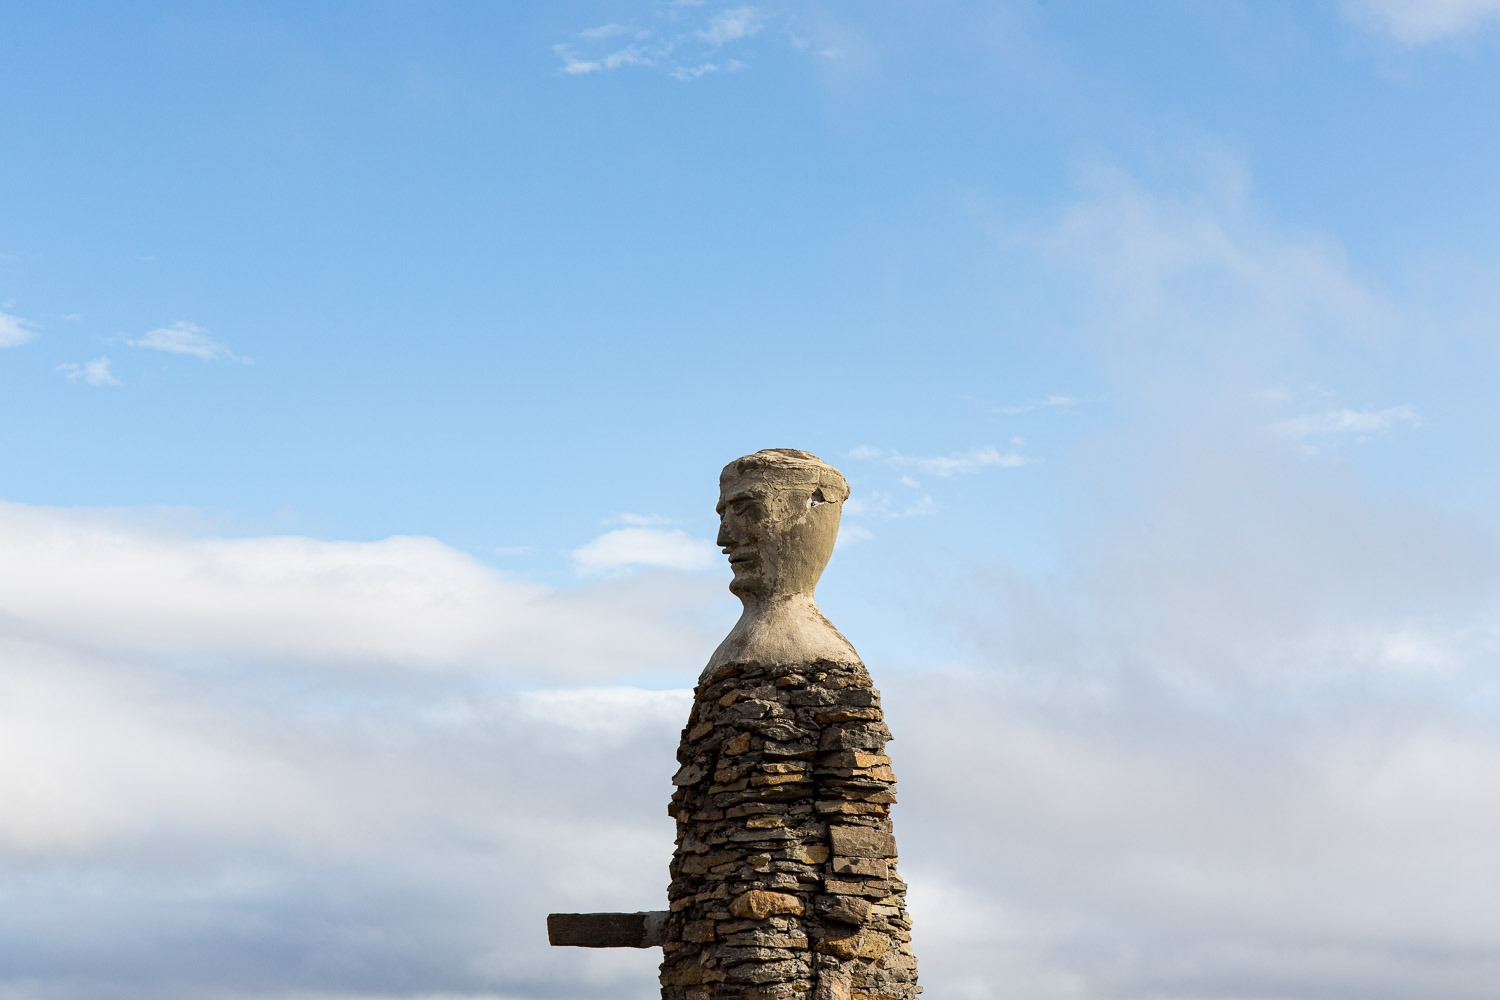 man made of stone in Iceland